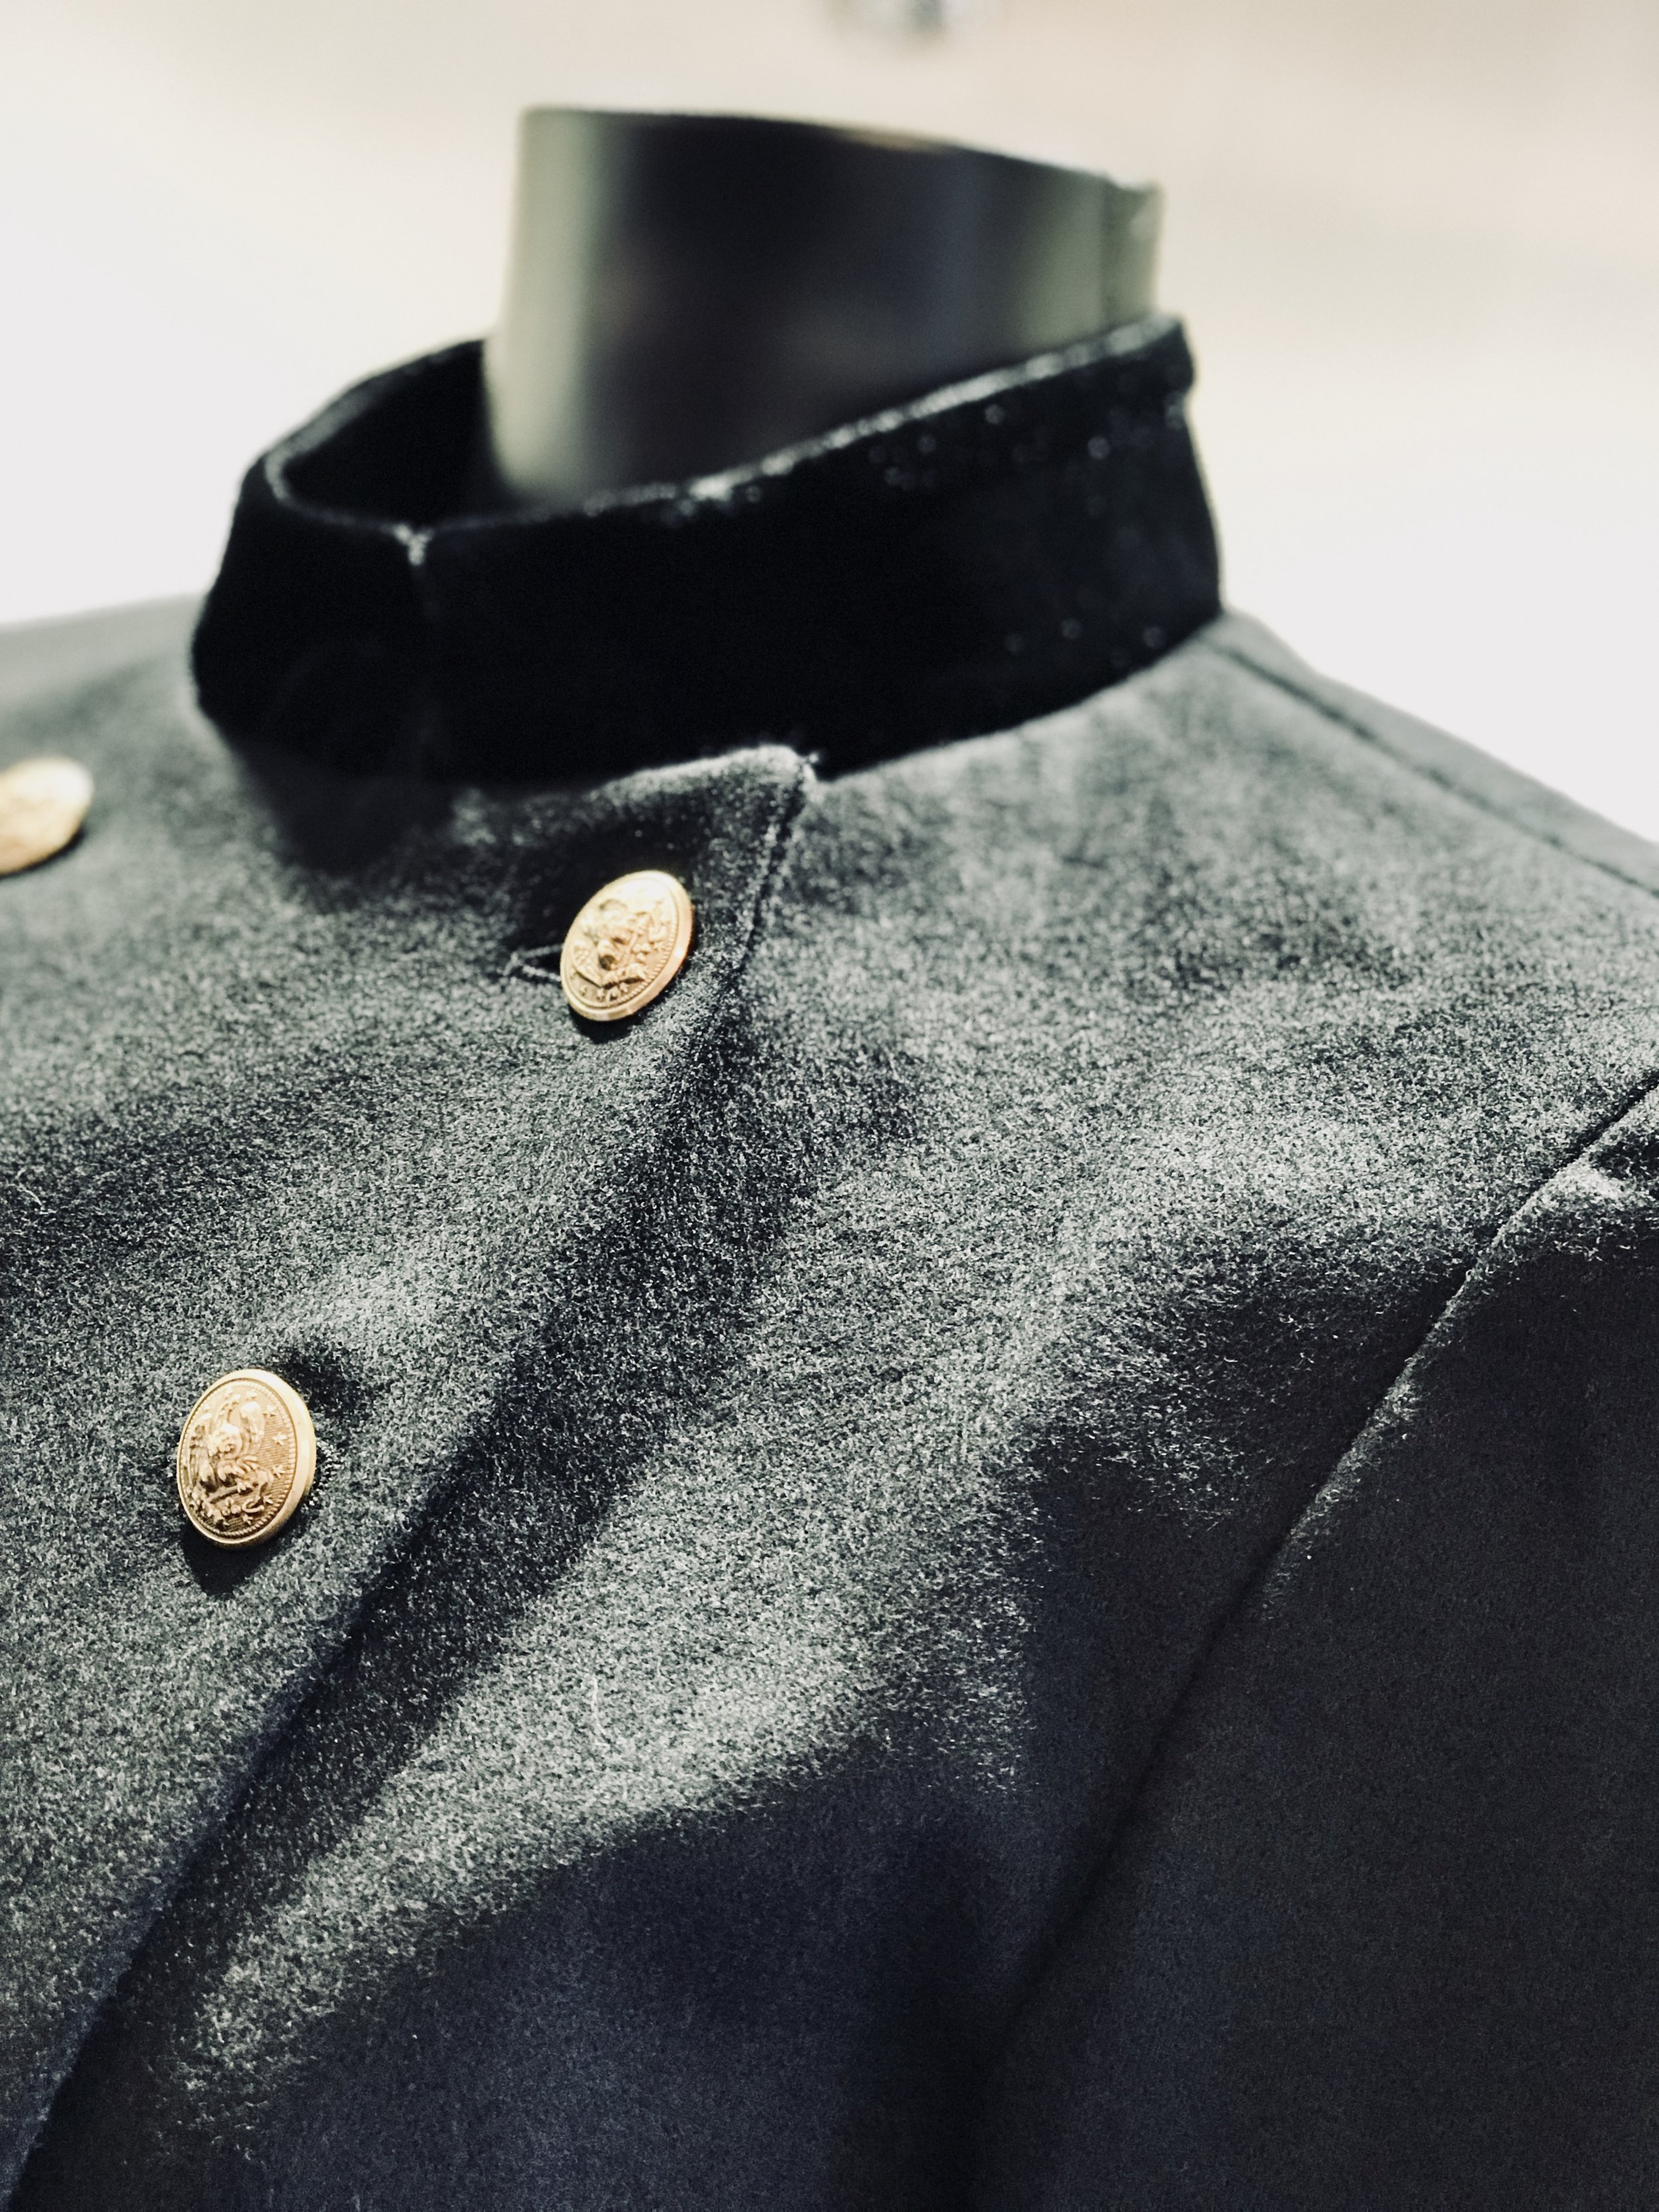 Cut slim for a modern fit, this menswear-inspired jacket features our favorite authentic military details: a velvet collar and cuffs, metallic bullion trim, and a double-breasted silhouette.